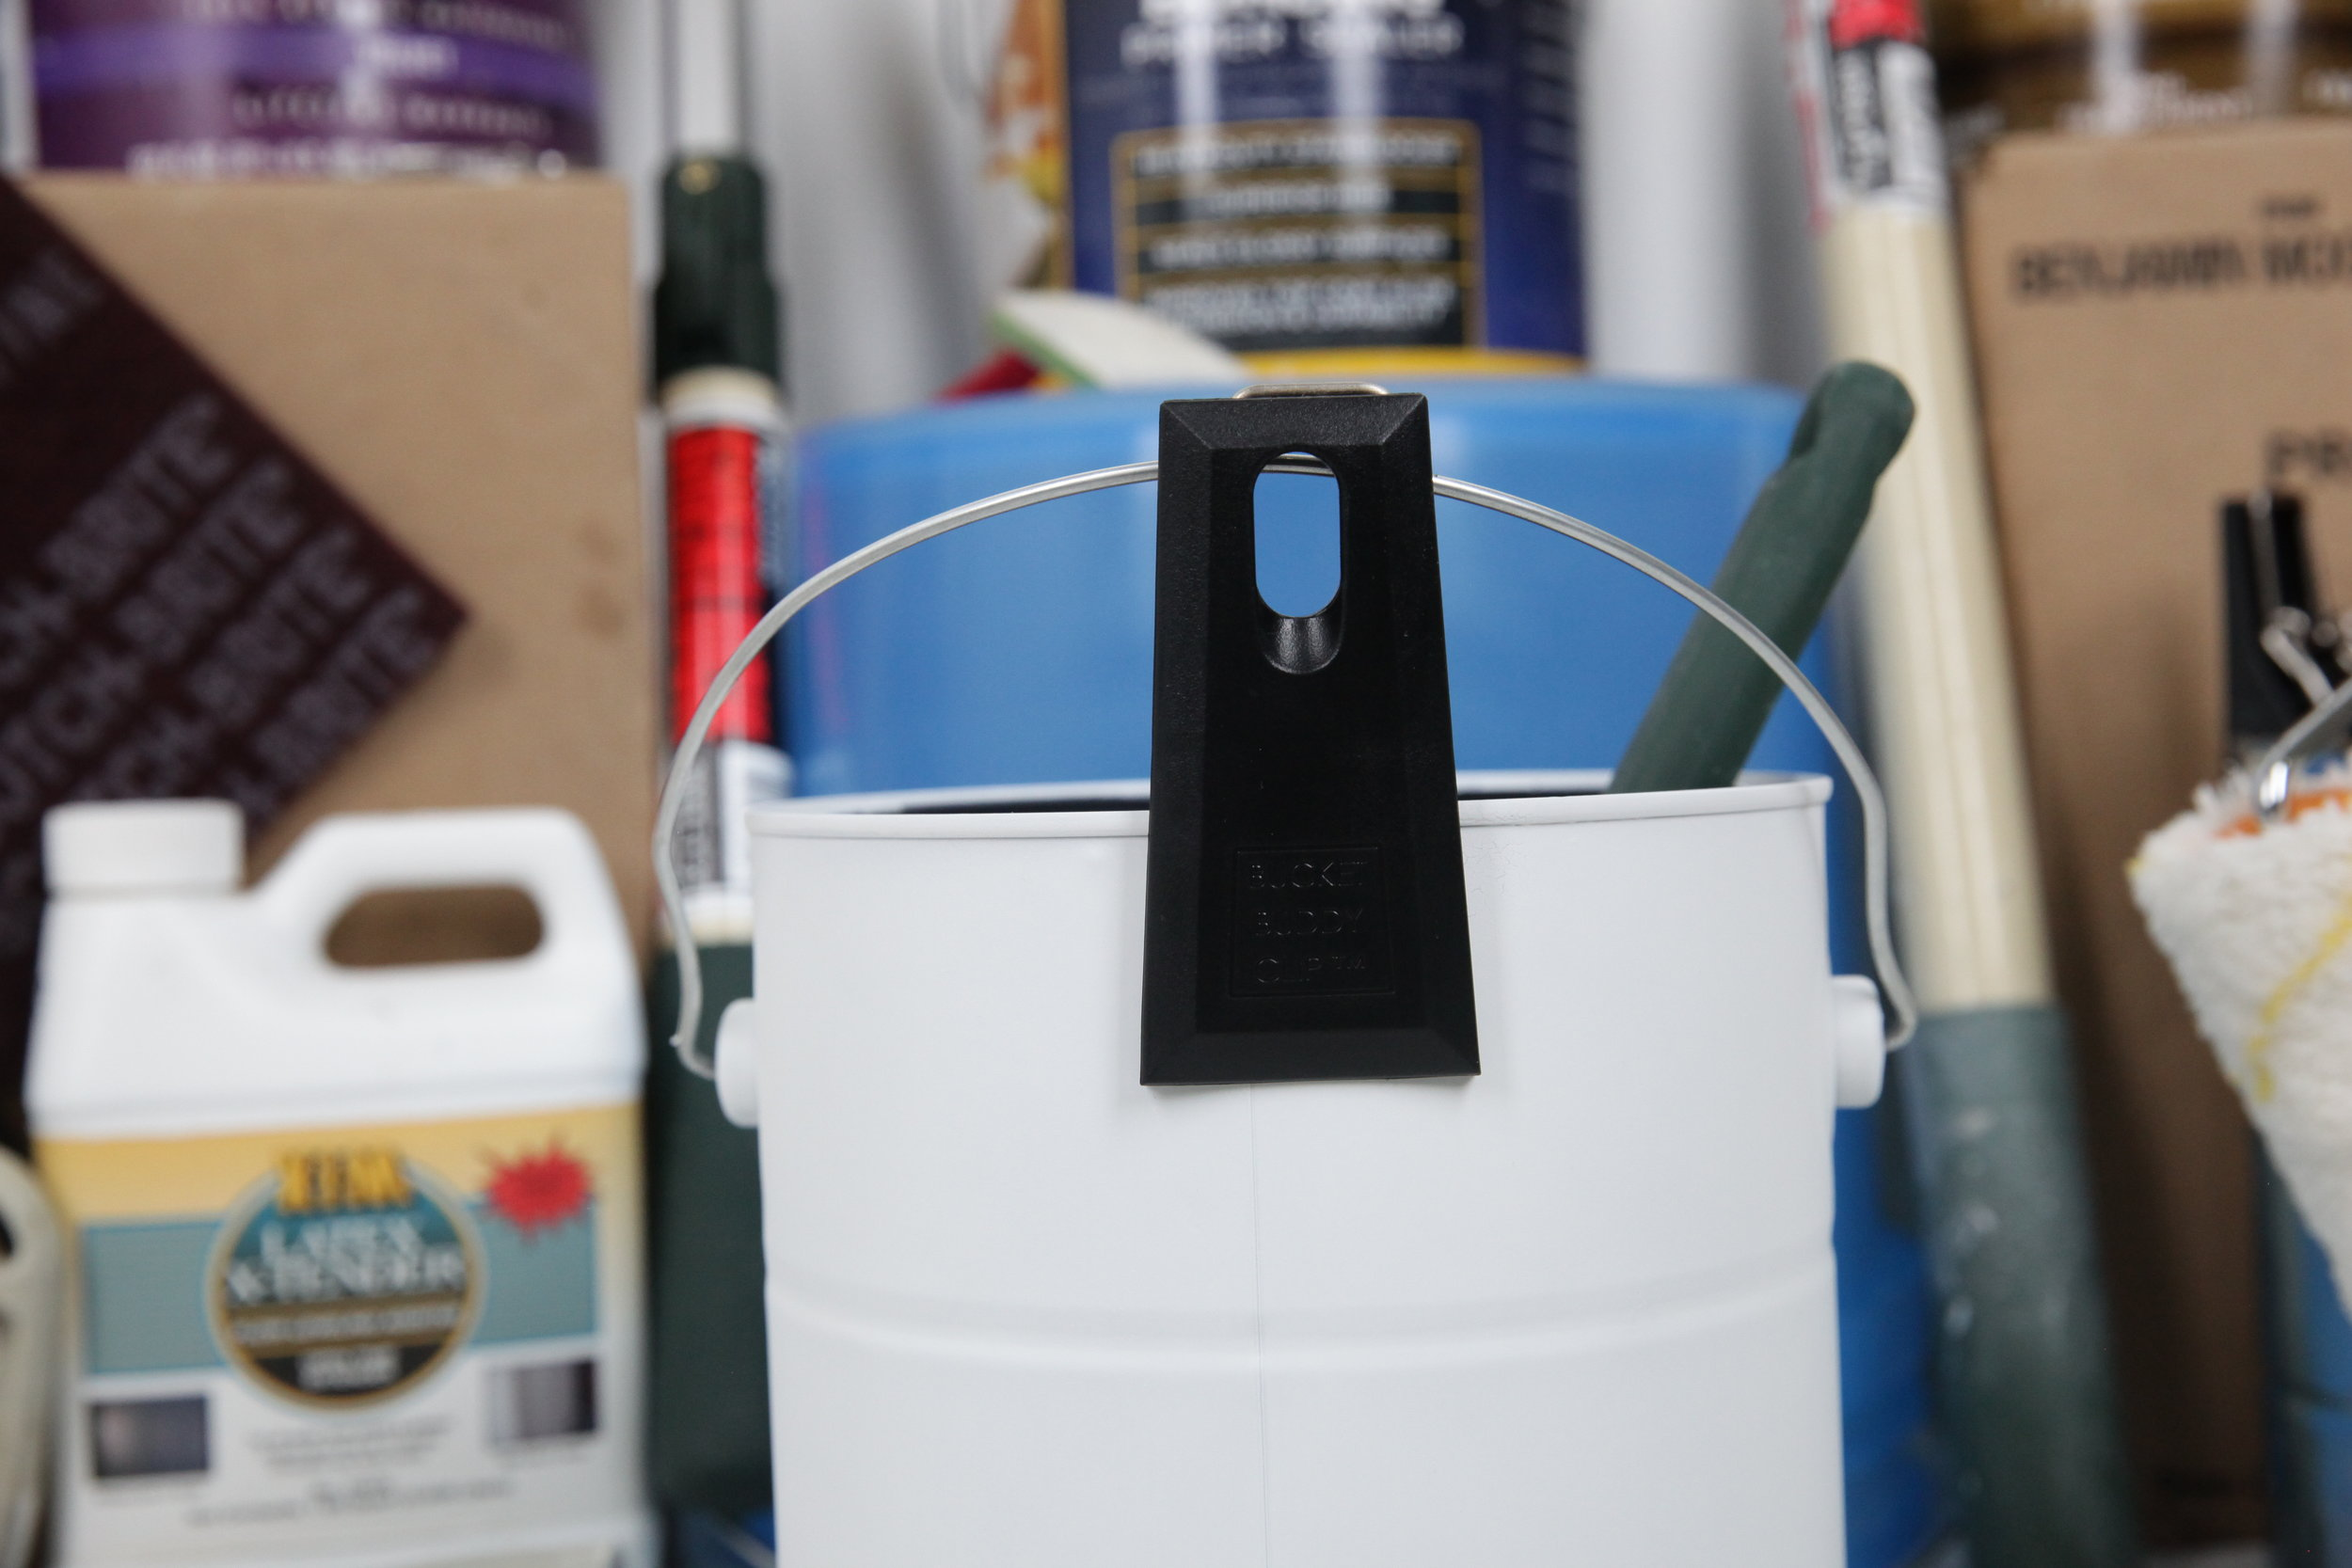 ANONYMOUS: THE BUCKET BUDDY CLIP IS AWESOME! - This Invention is a revolutionary tool for anyone who uses a brush and can to paint interior and exterior houses, commercial or residential!It frees up both hands to climb ladders, frees up one hand to balance with/hold steady with when your brushing. It also prevents your bucket from tipping over and spilling while it is attached to your hip. I really works awesome and is an essential tool that every painter should have. If you don't believe me, you should try it for yourself! It rocks!